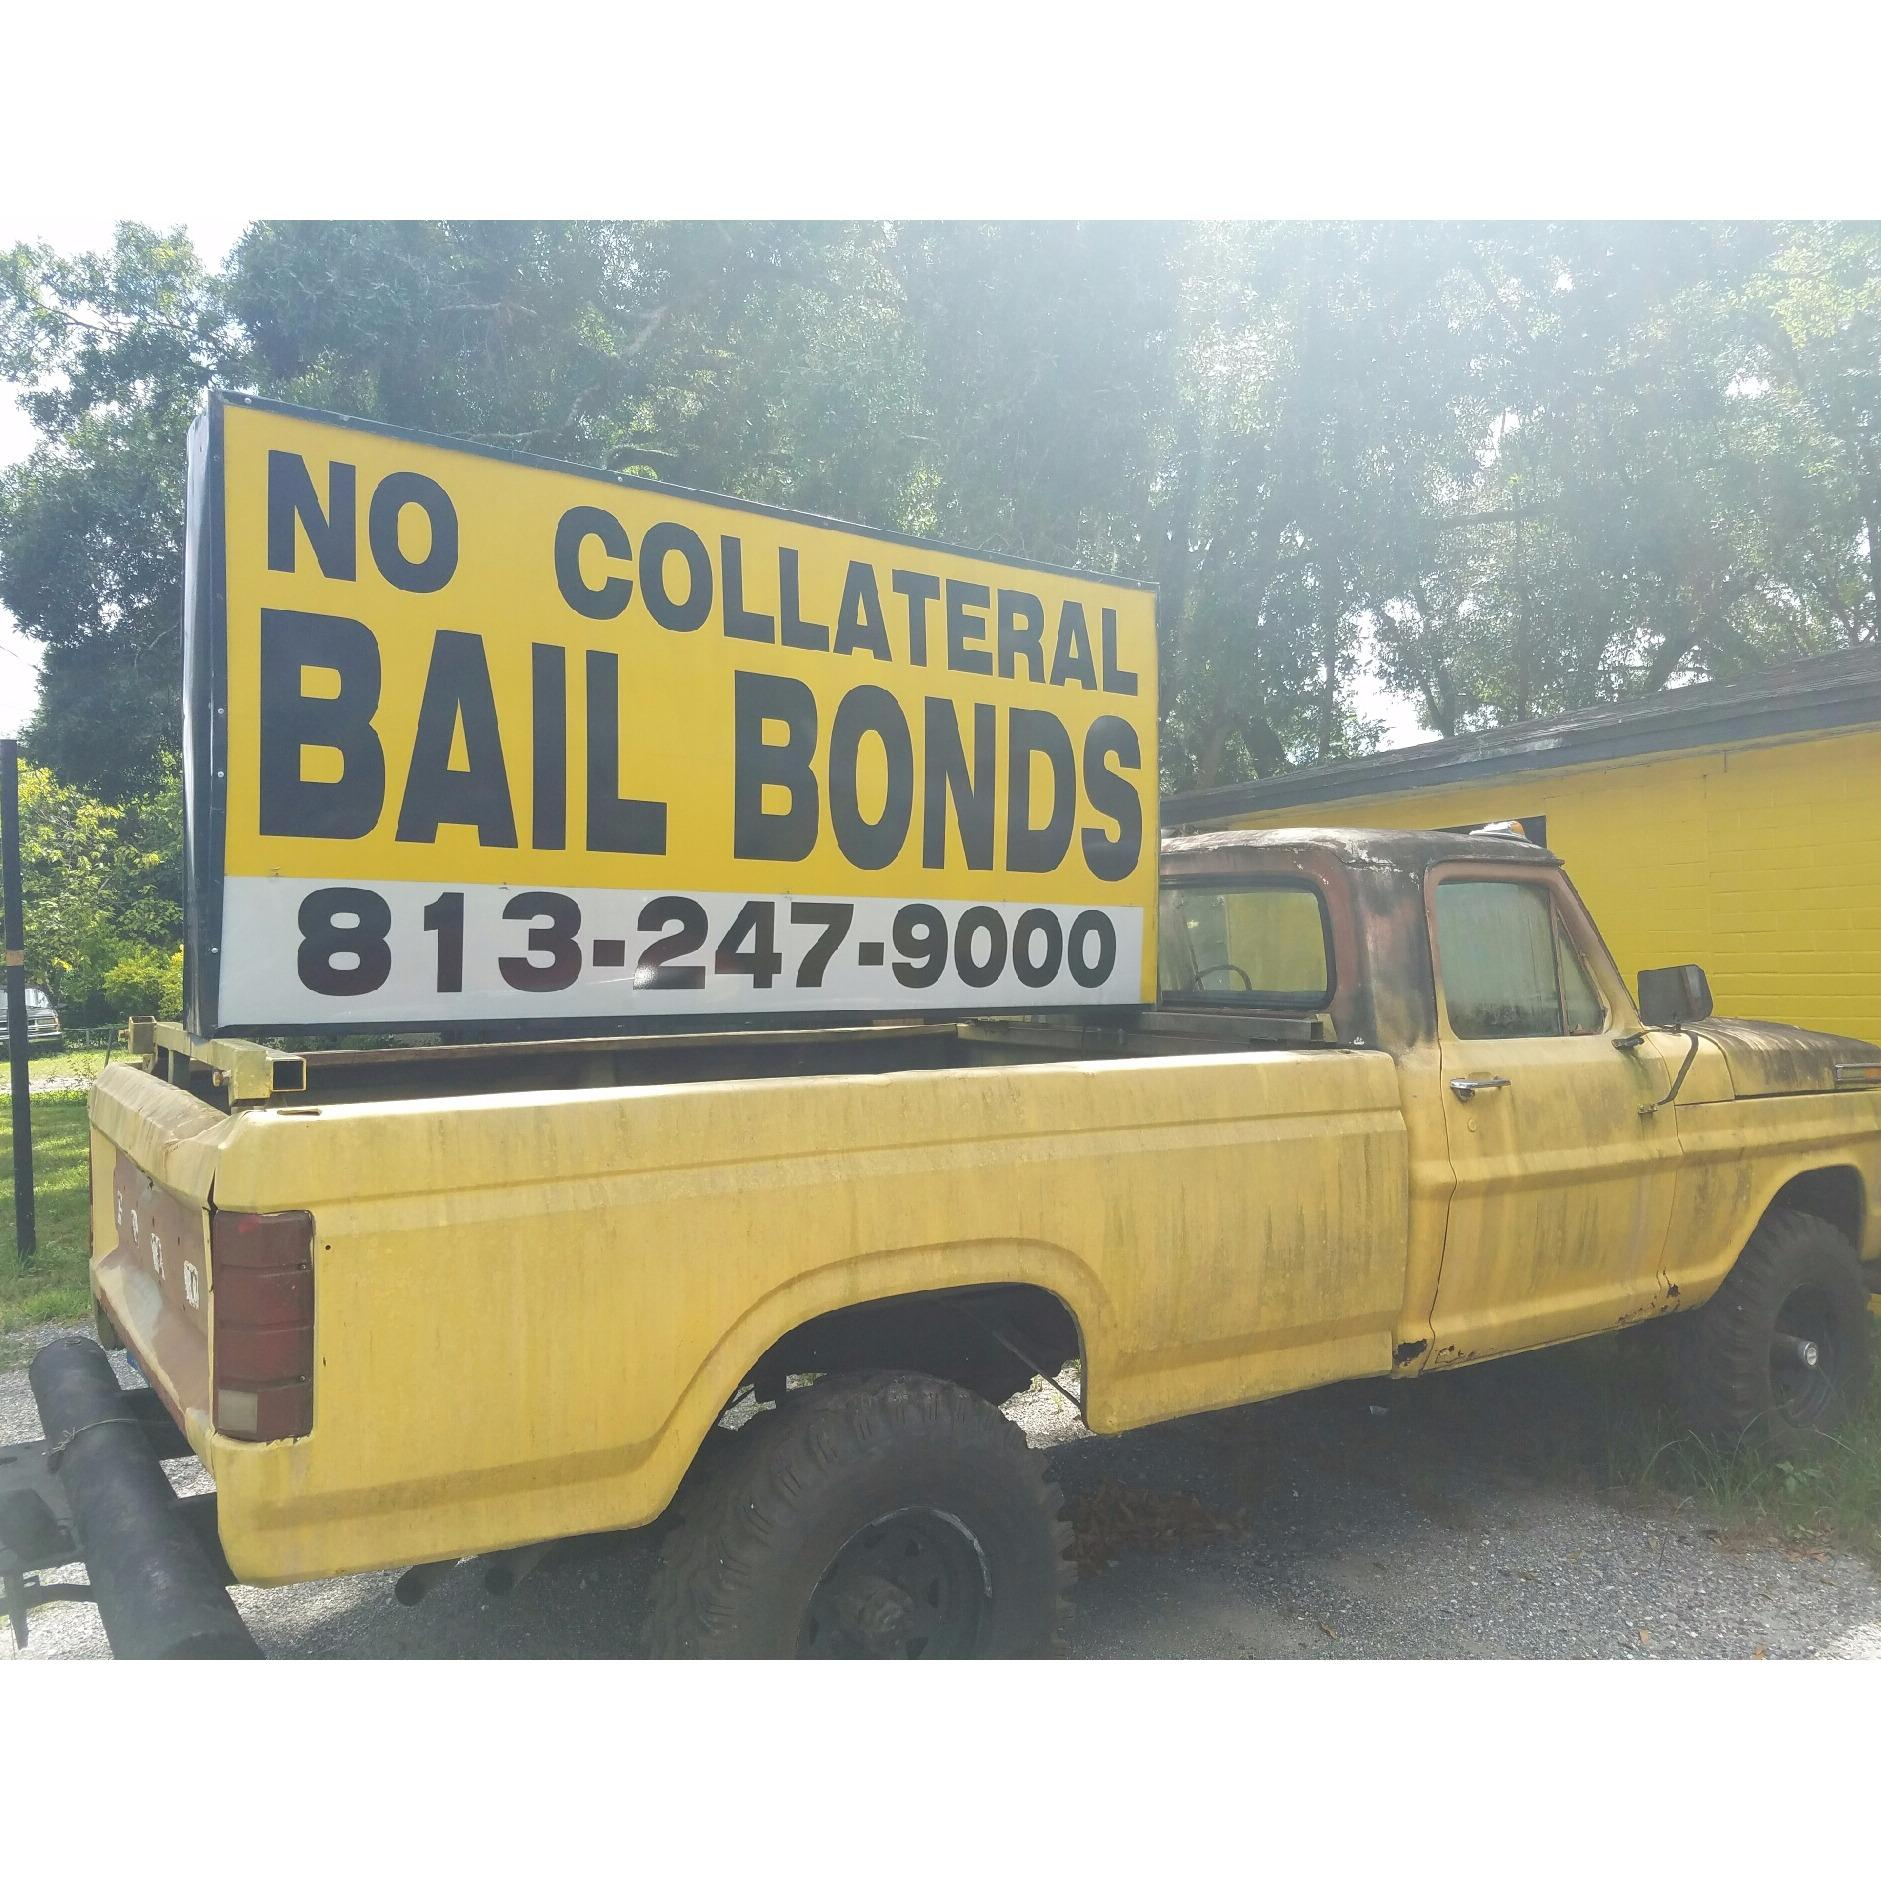 No Collateral Bail Bonds Corp. image 5